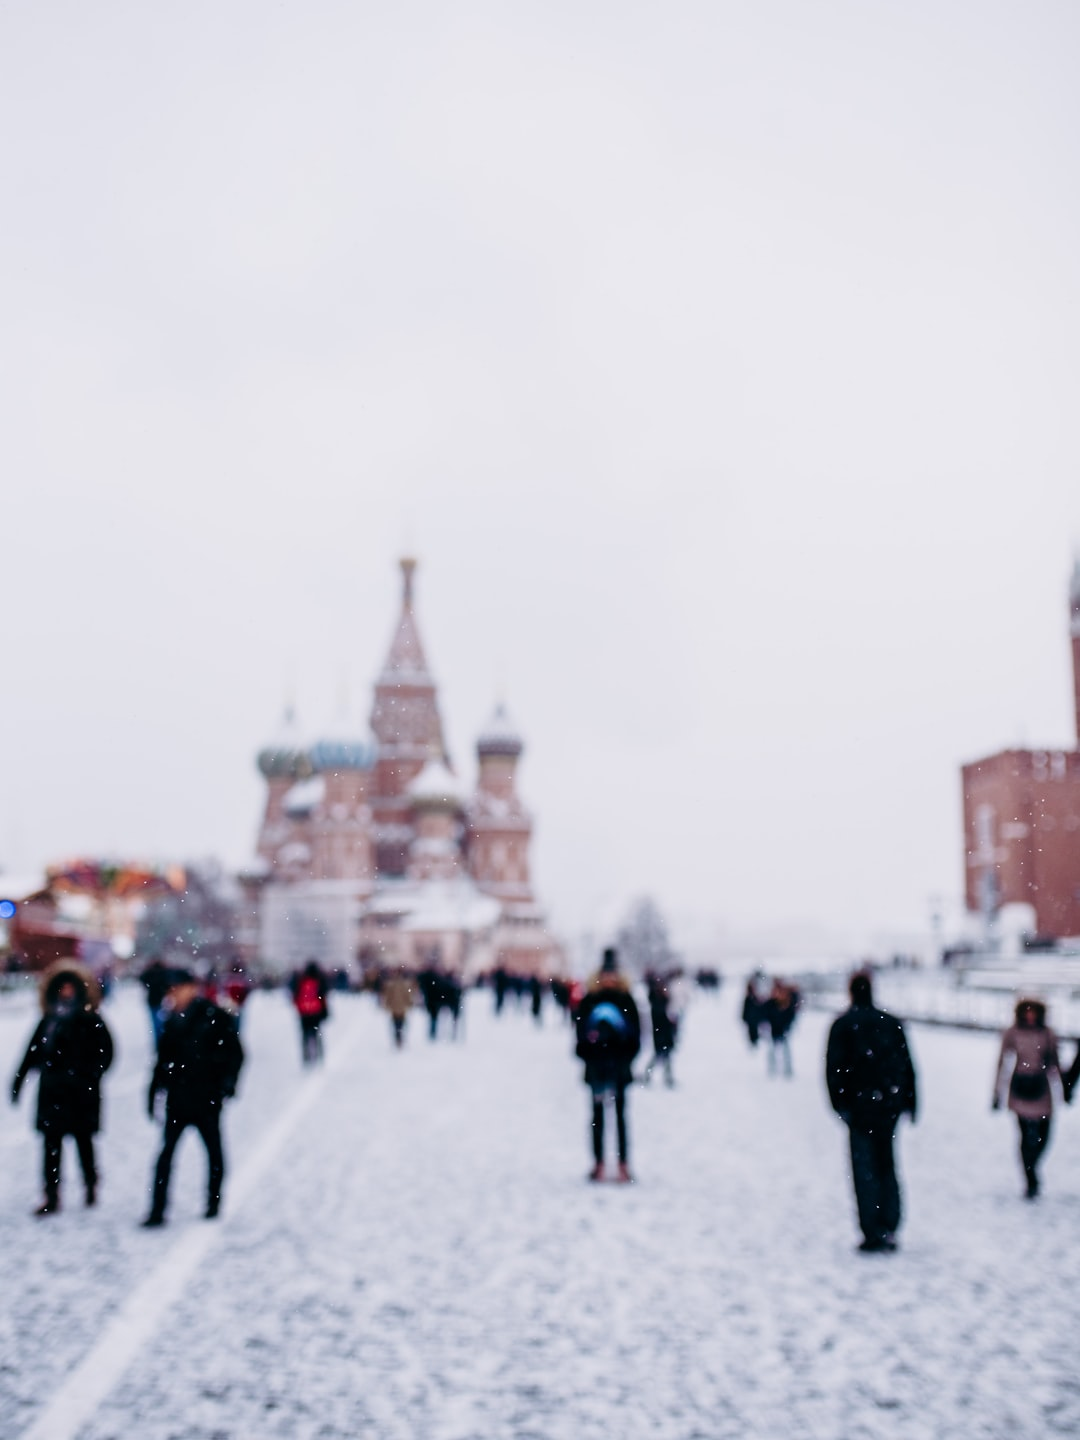 Cathedral Saint Basil under the snow!